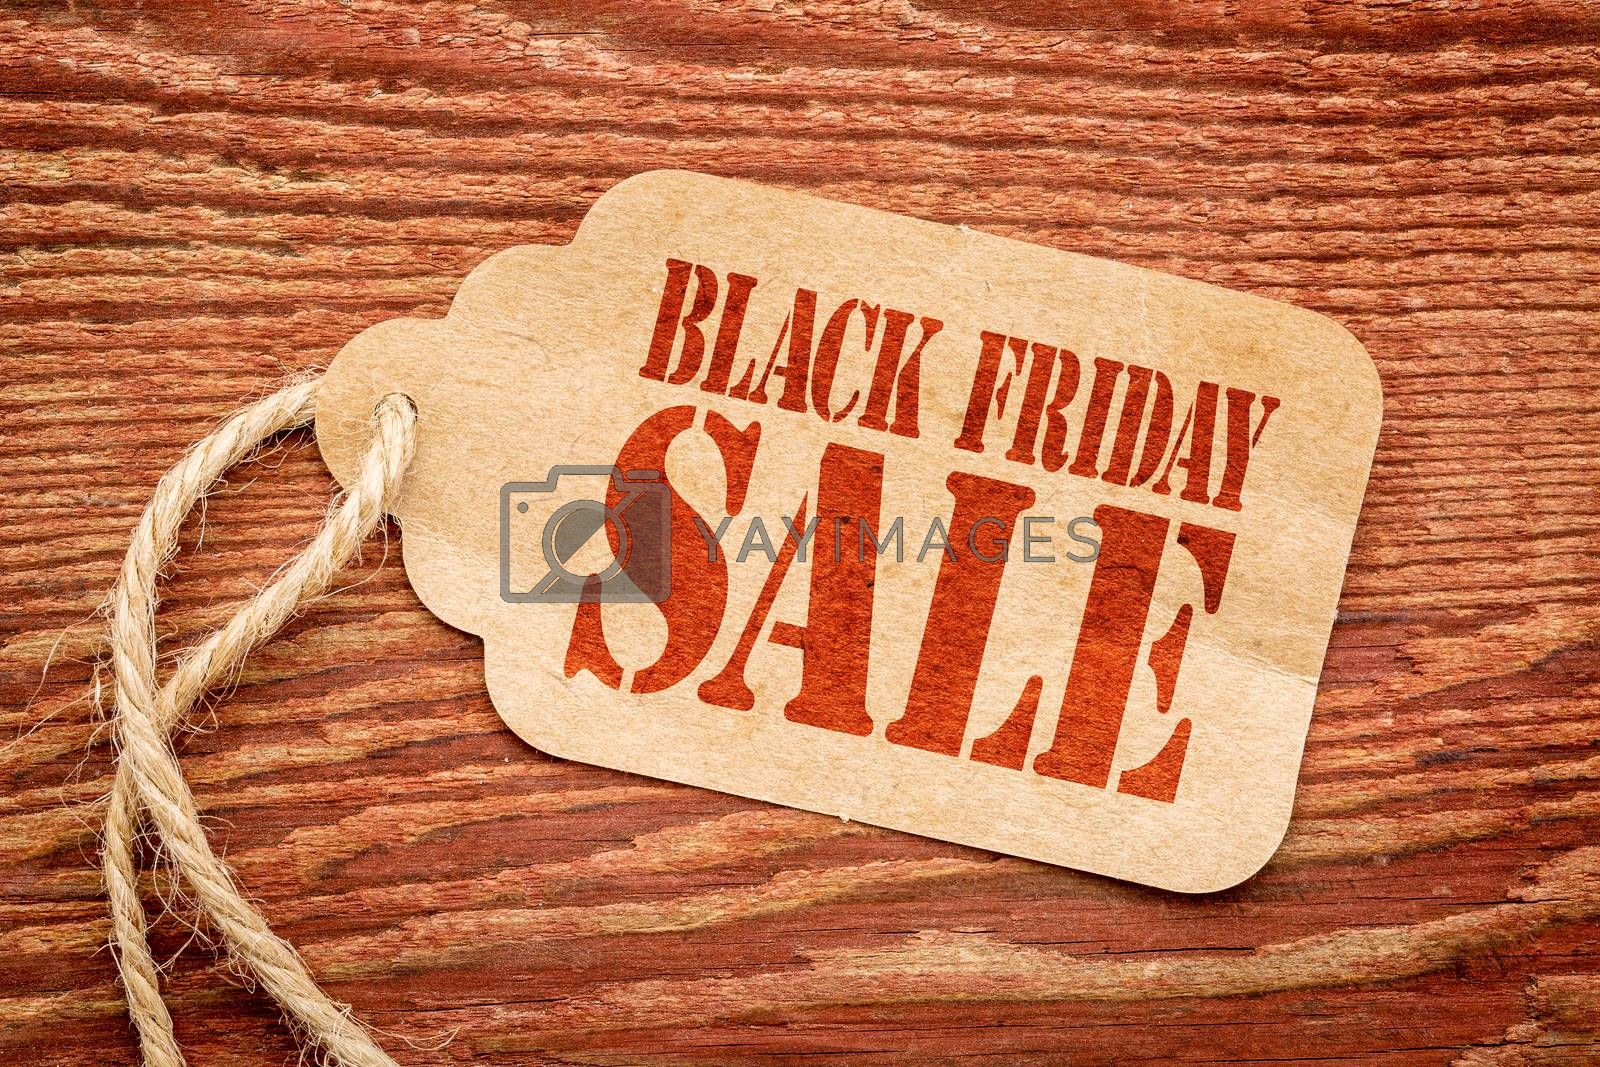 Black Friday sale sign a paper price tag against rustic red painted barn wood